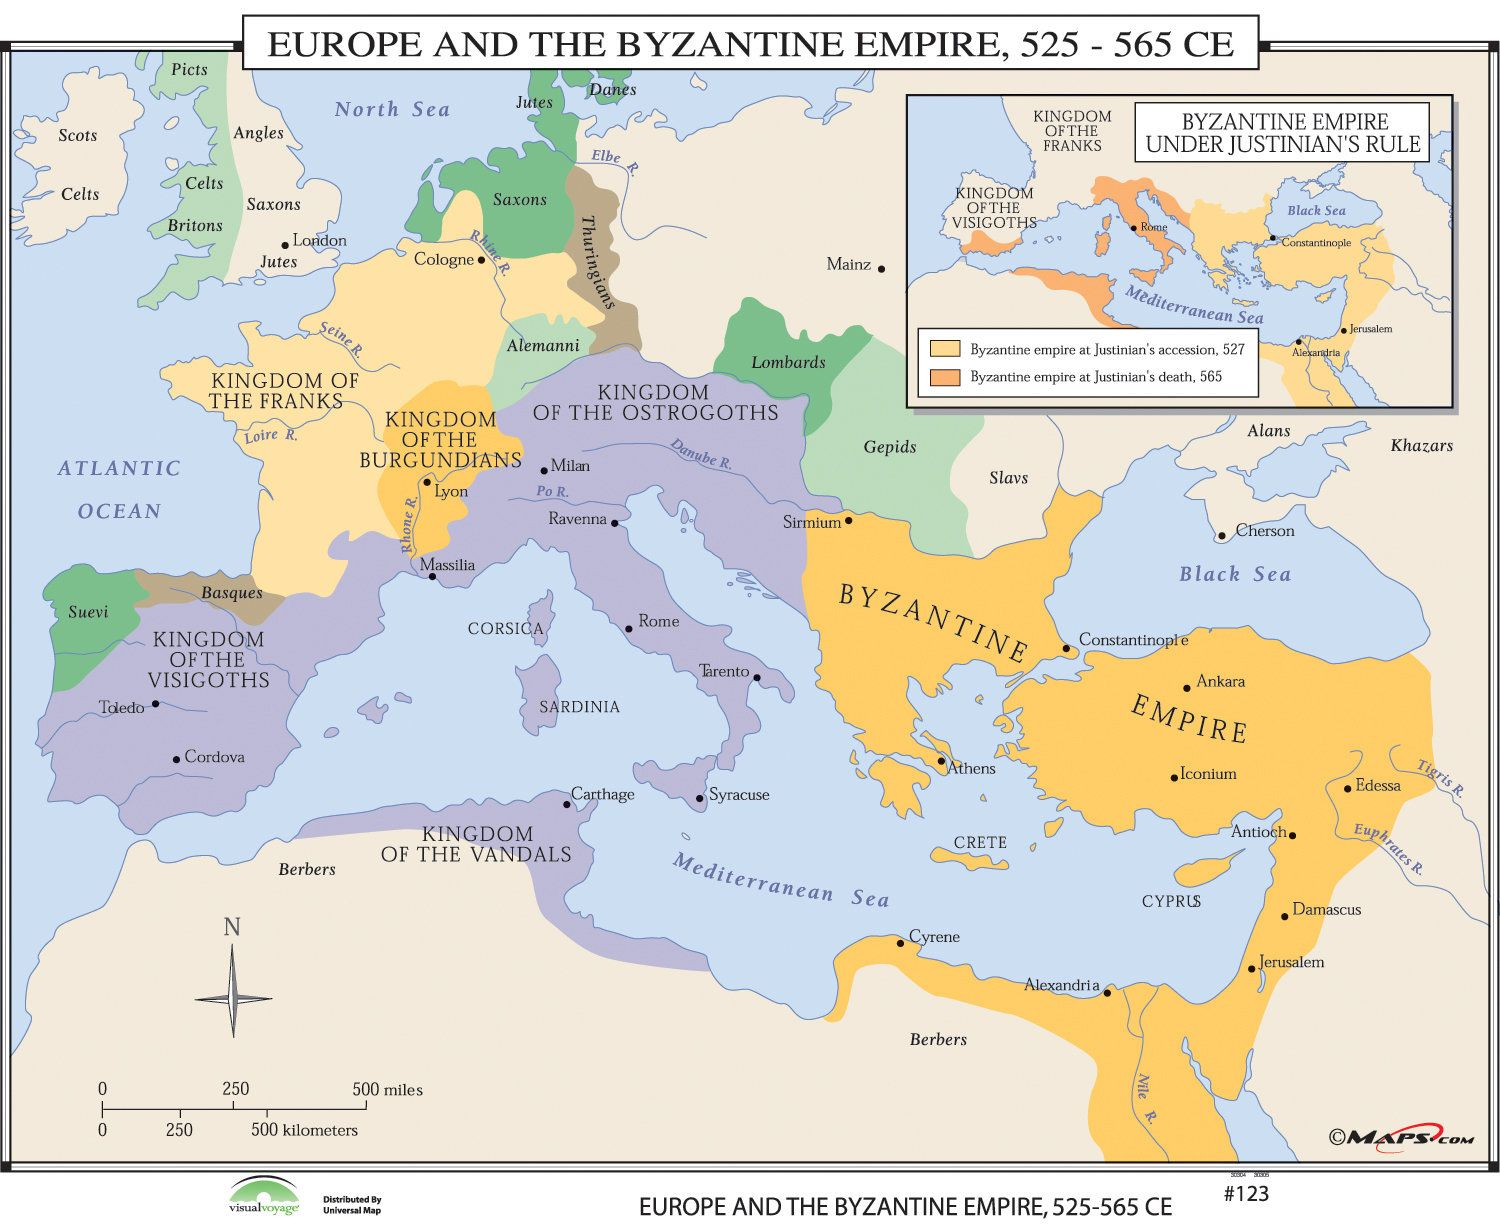 World history wall maps europe byzantine empire wall maps world history wall maps europe byzantine empire gumiabroncs Image collections